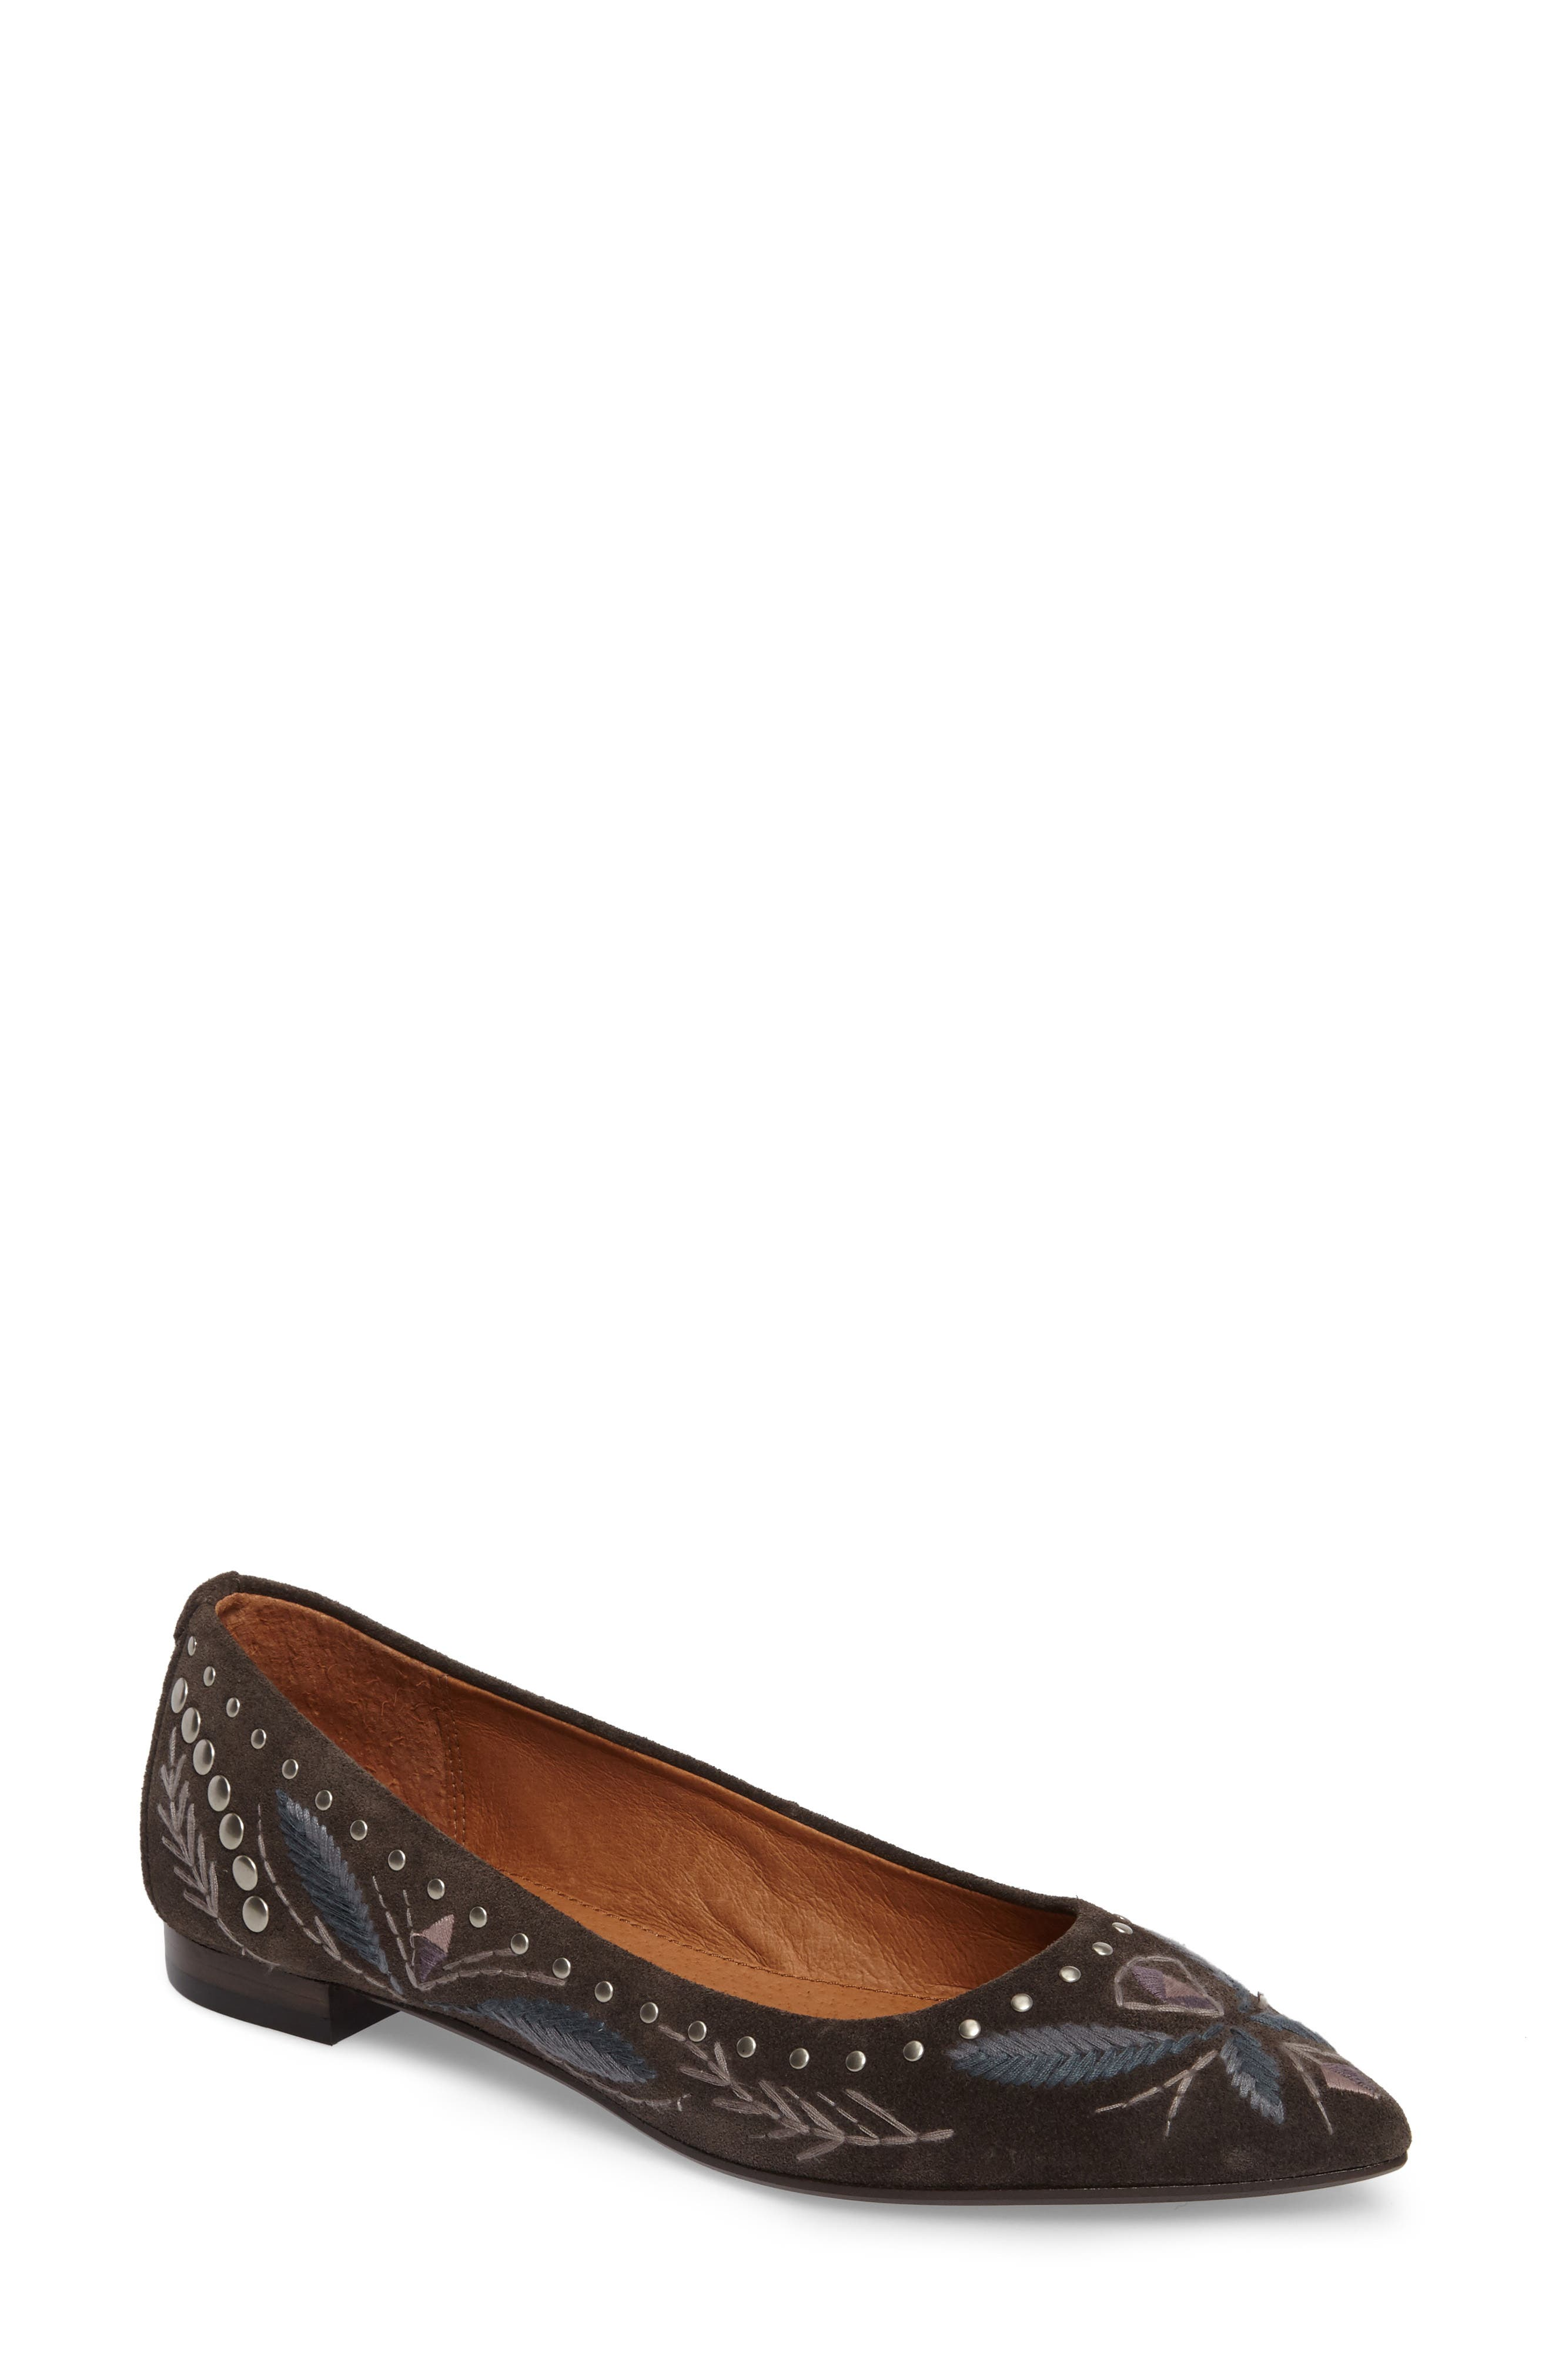 Sienna Embroidered Ballet Flat,                             Main thumbnail 1, color,                             030